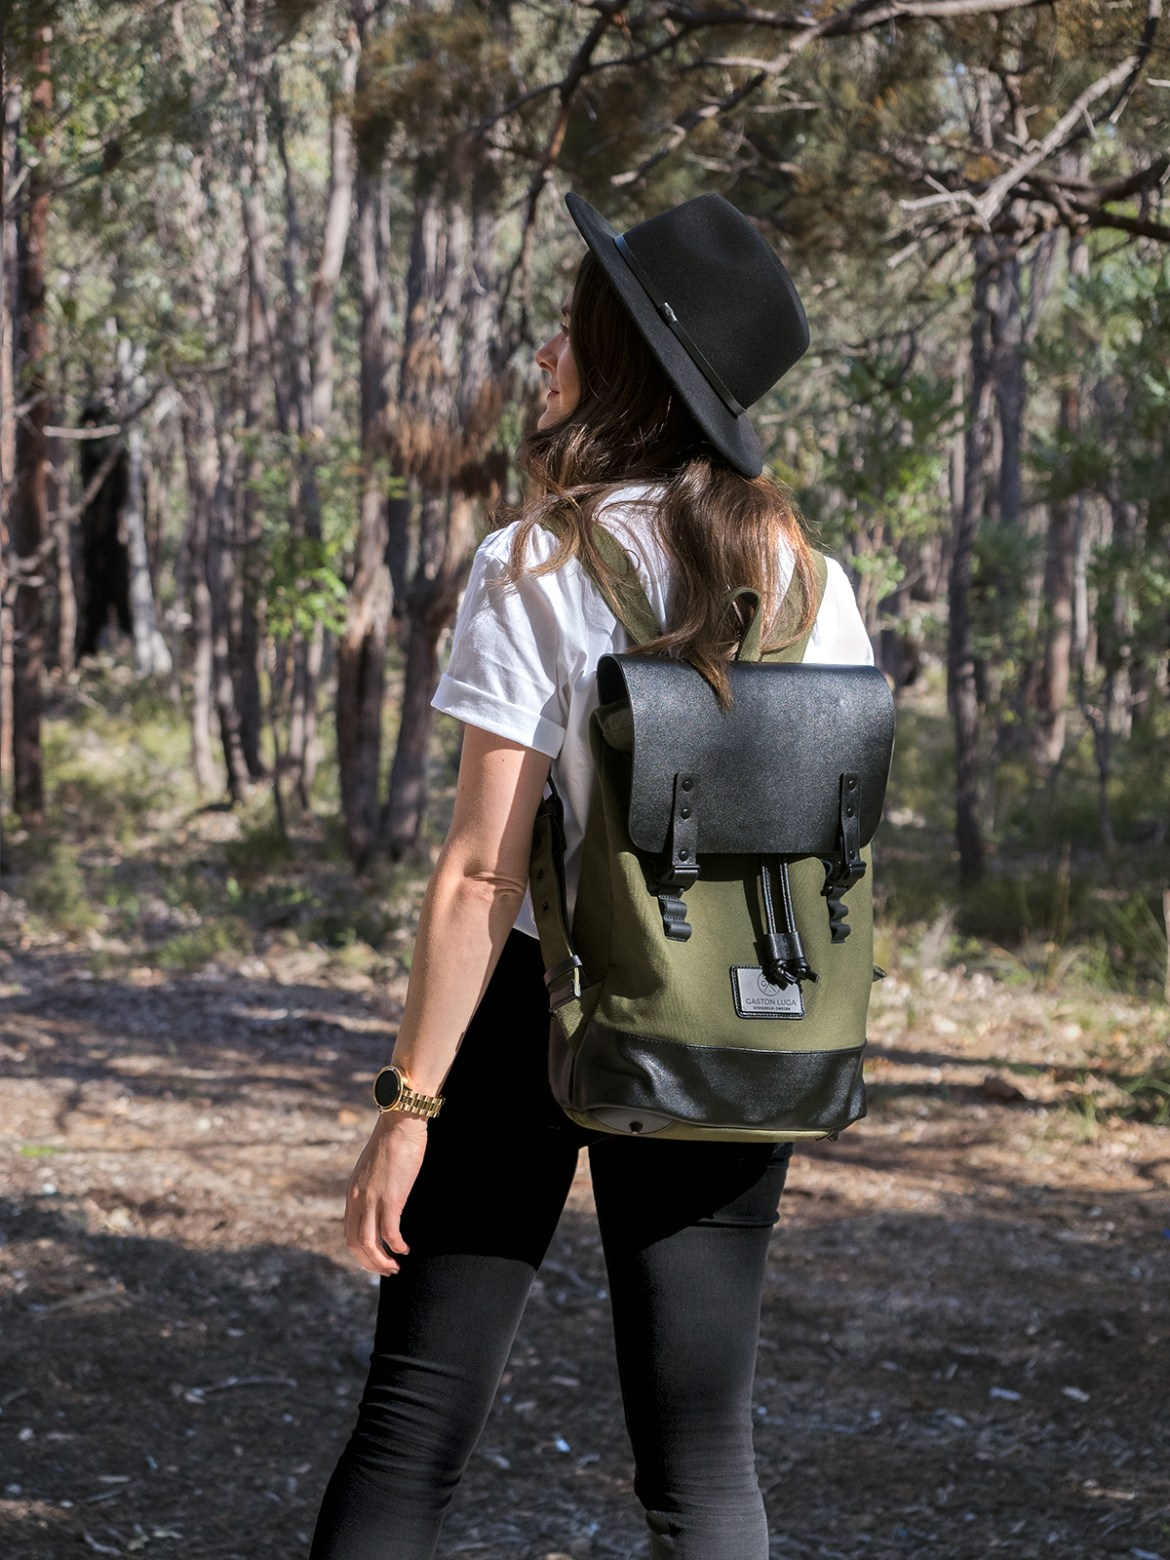 Gaston Luga Praper olive and black backpack worn by Inspiring Wit travel and fashion blogger Will and Bear wool hat